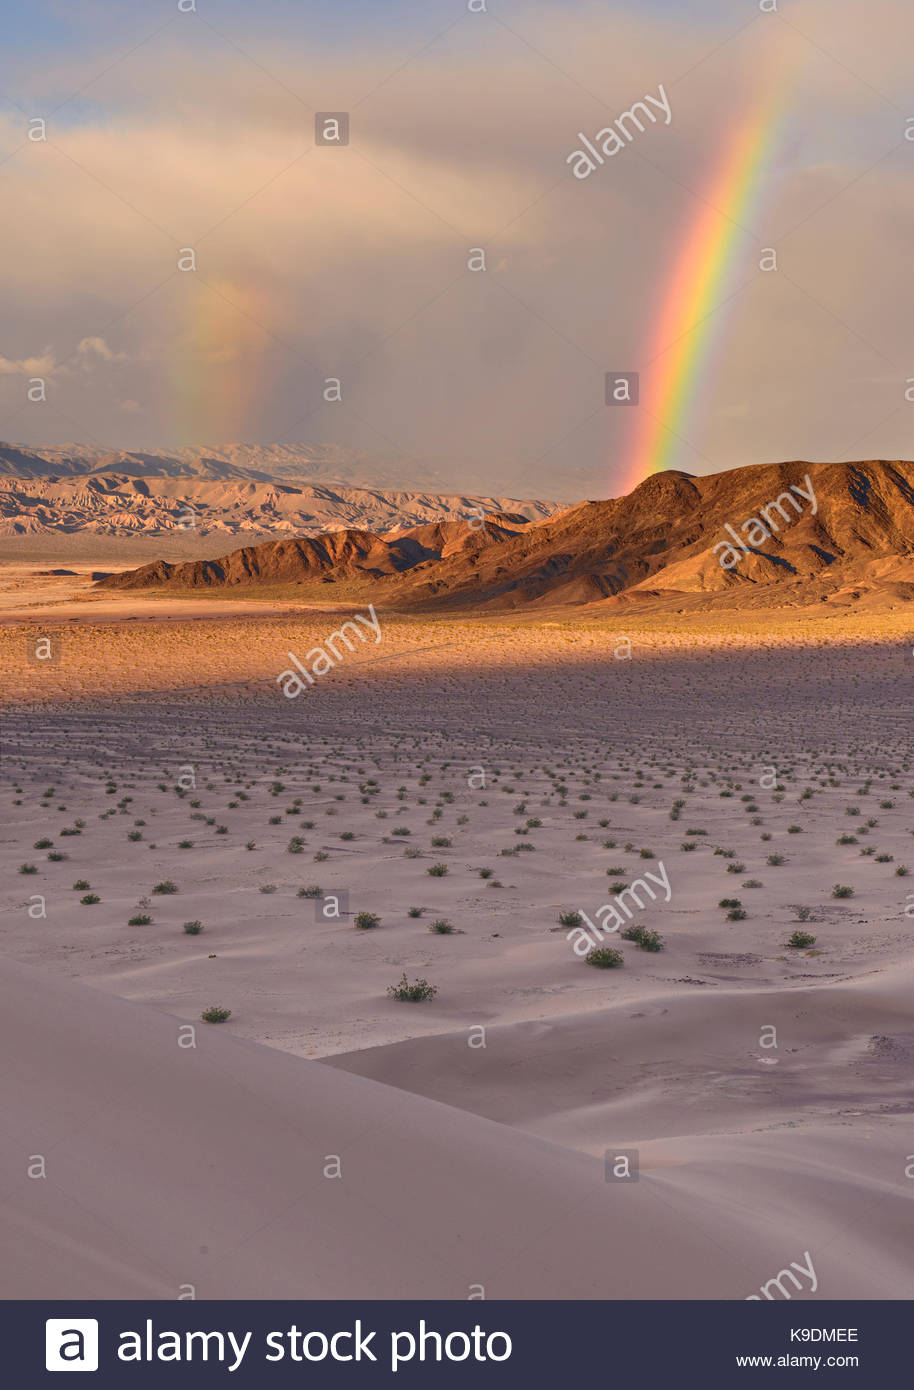 Double Rainbow over Saratoga Spring from Ibex Dunes, Death Valley National Park, California - Stock Image